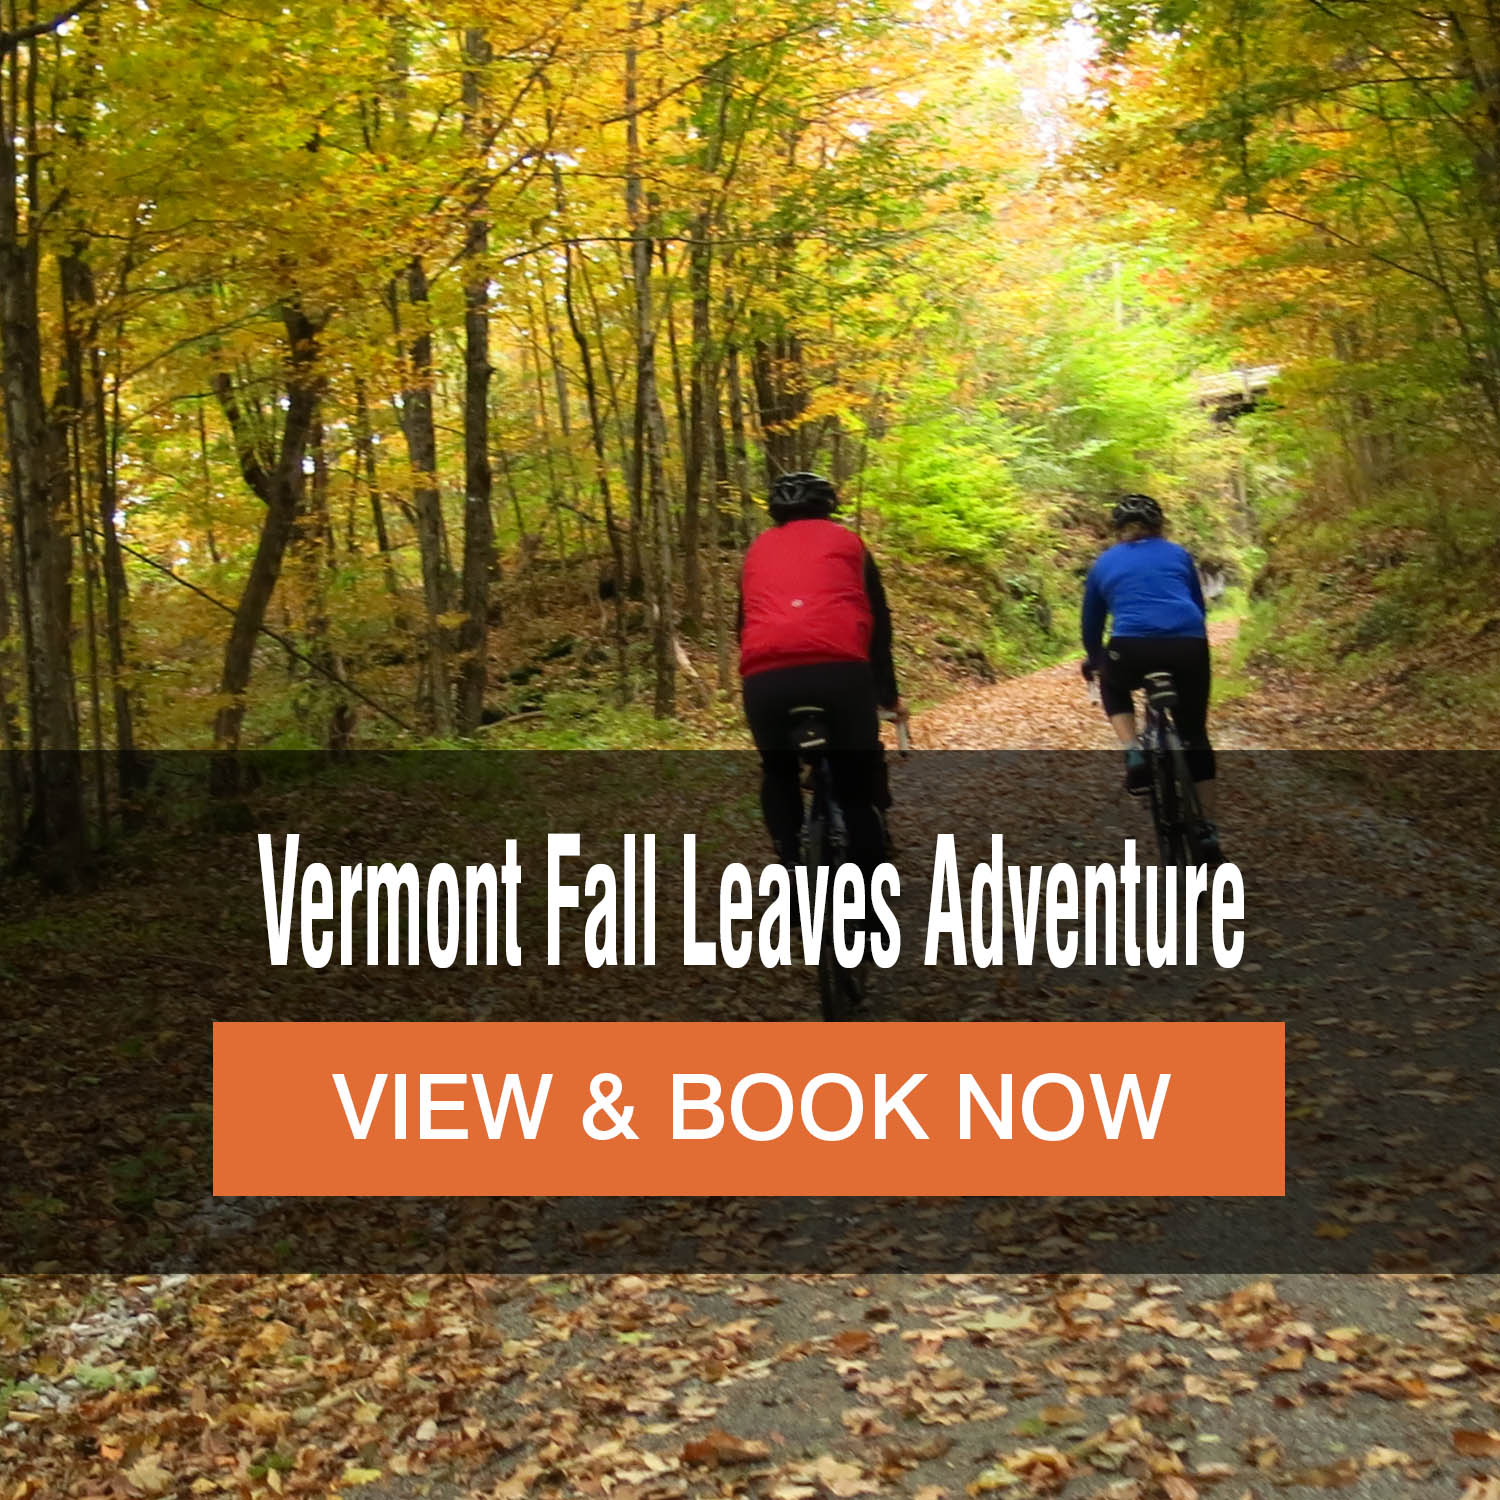 Vermont Fall Leaves